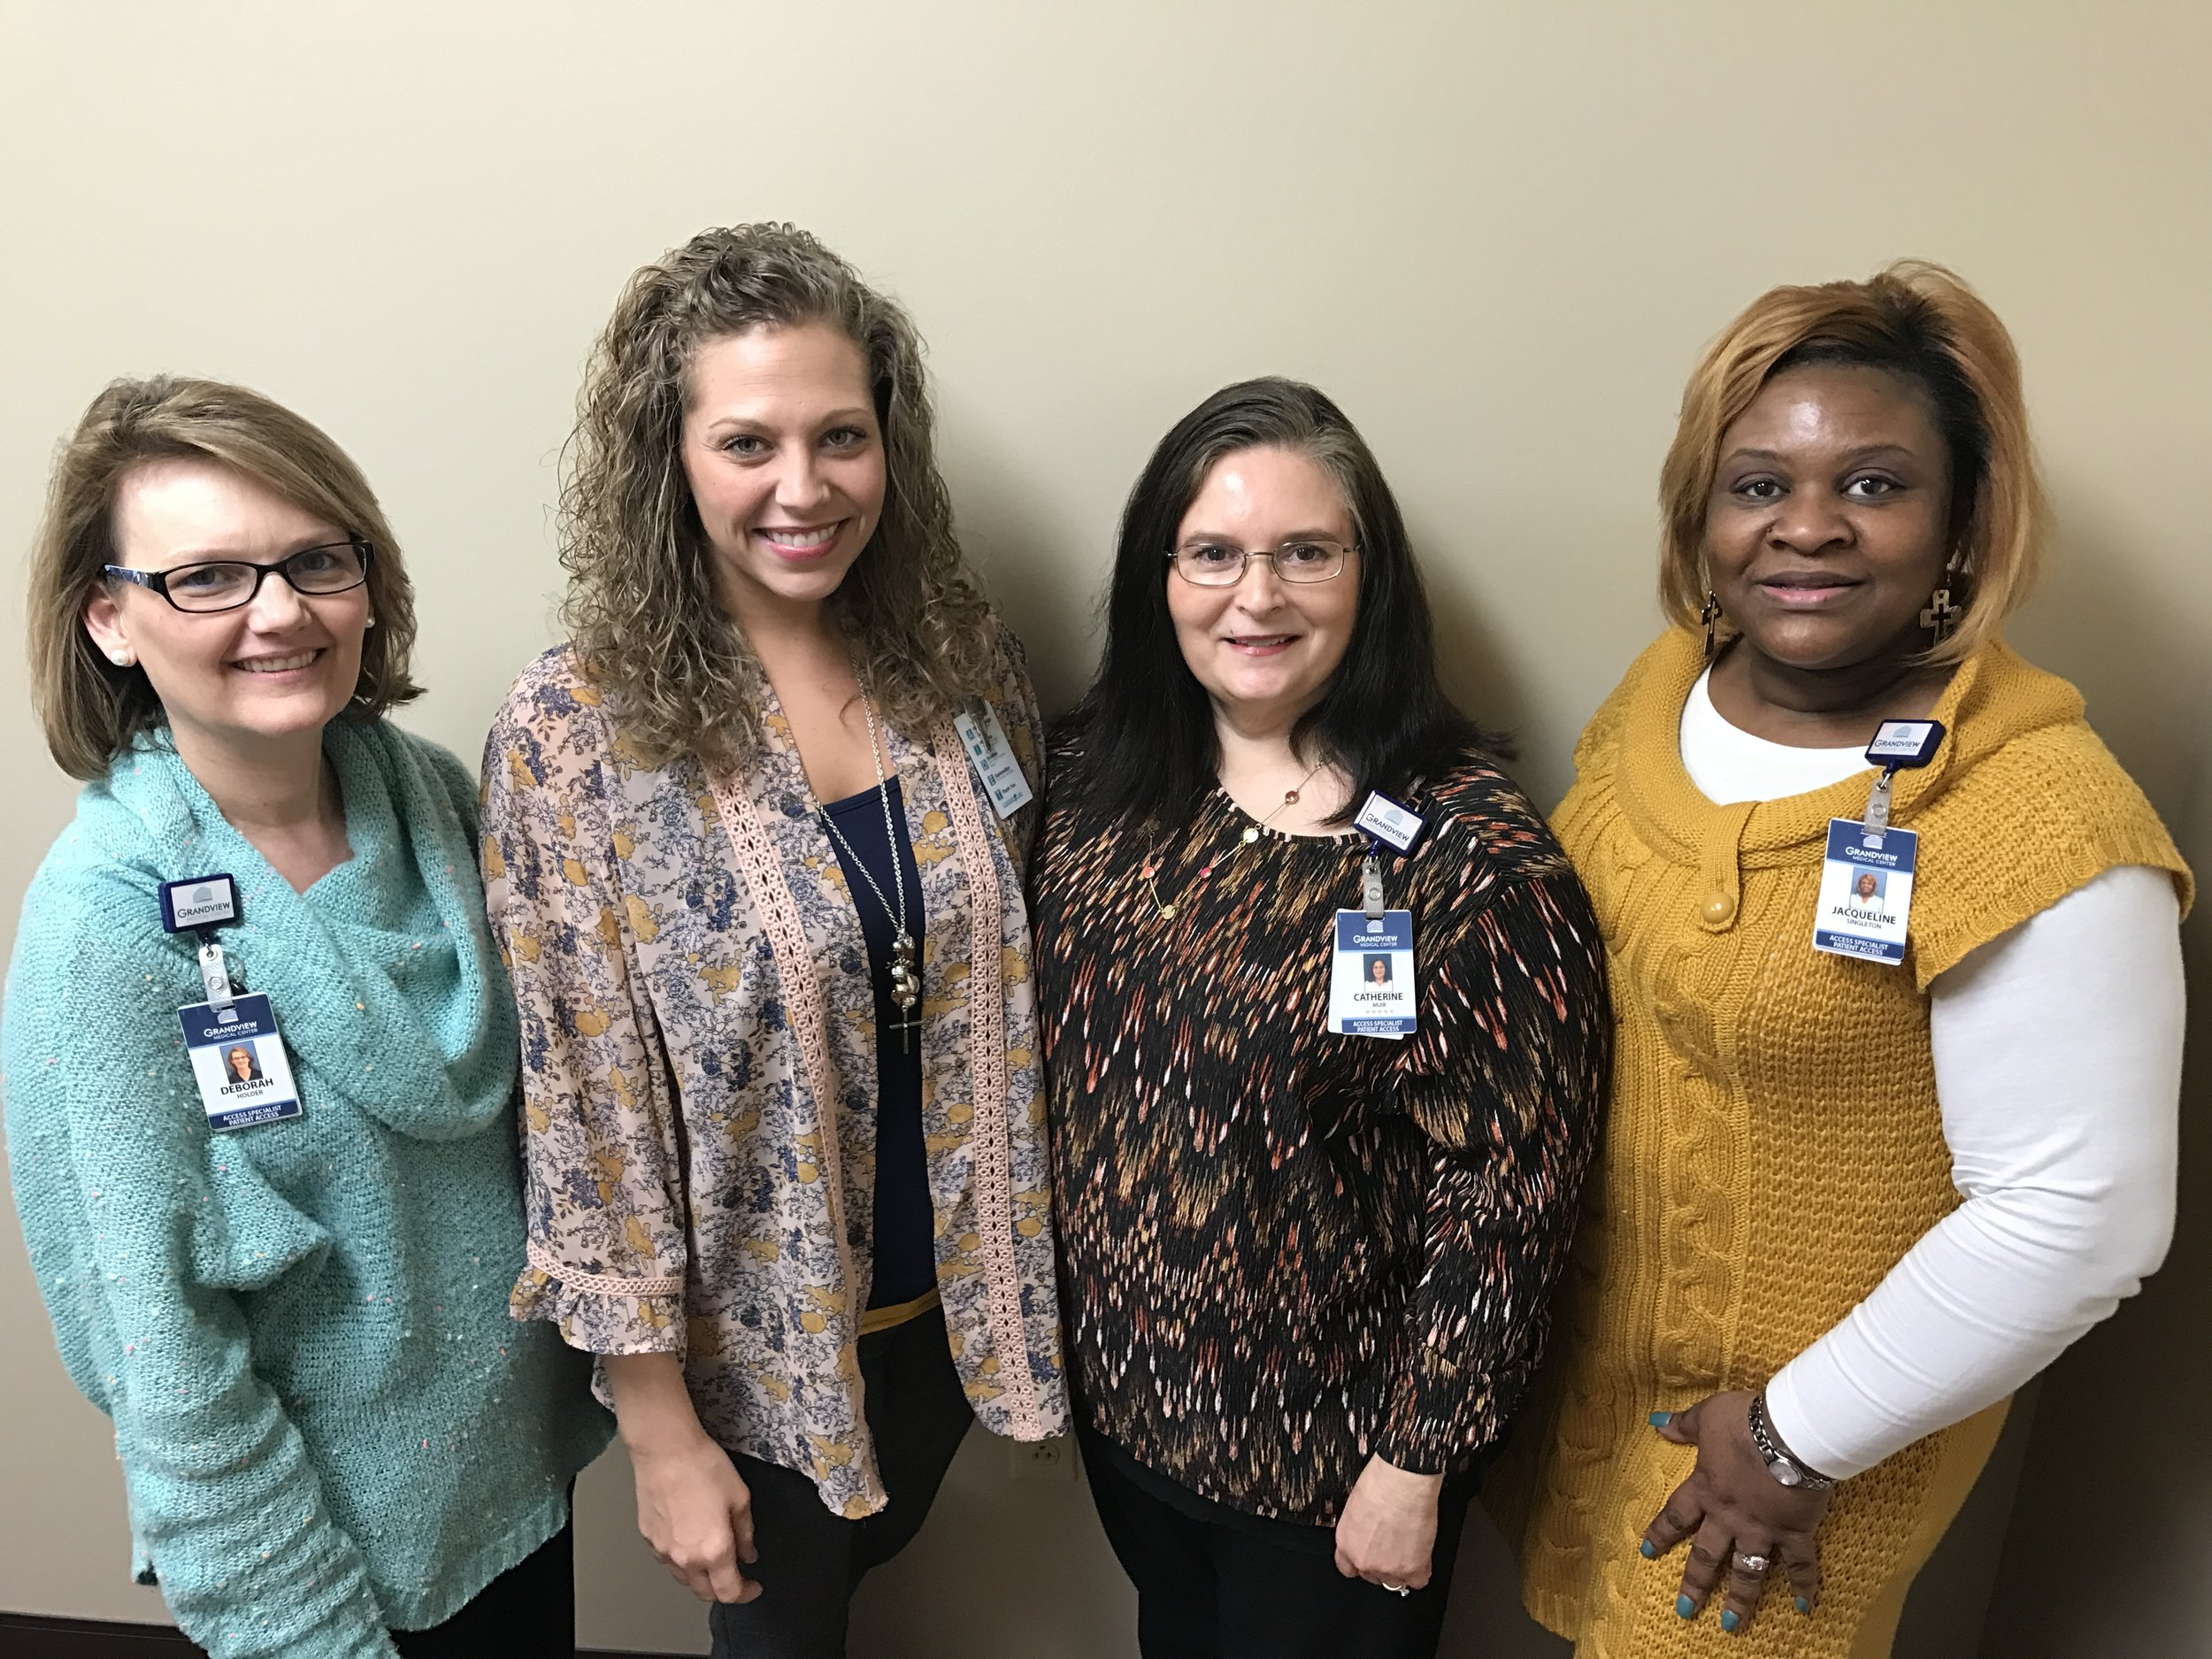 Deborah Holder, Jessica Butler, Catherine Muir, Jacqueline Singleton  Grandview Medical CPAR recipients that earned their CPAR this year in Birmingham.